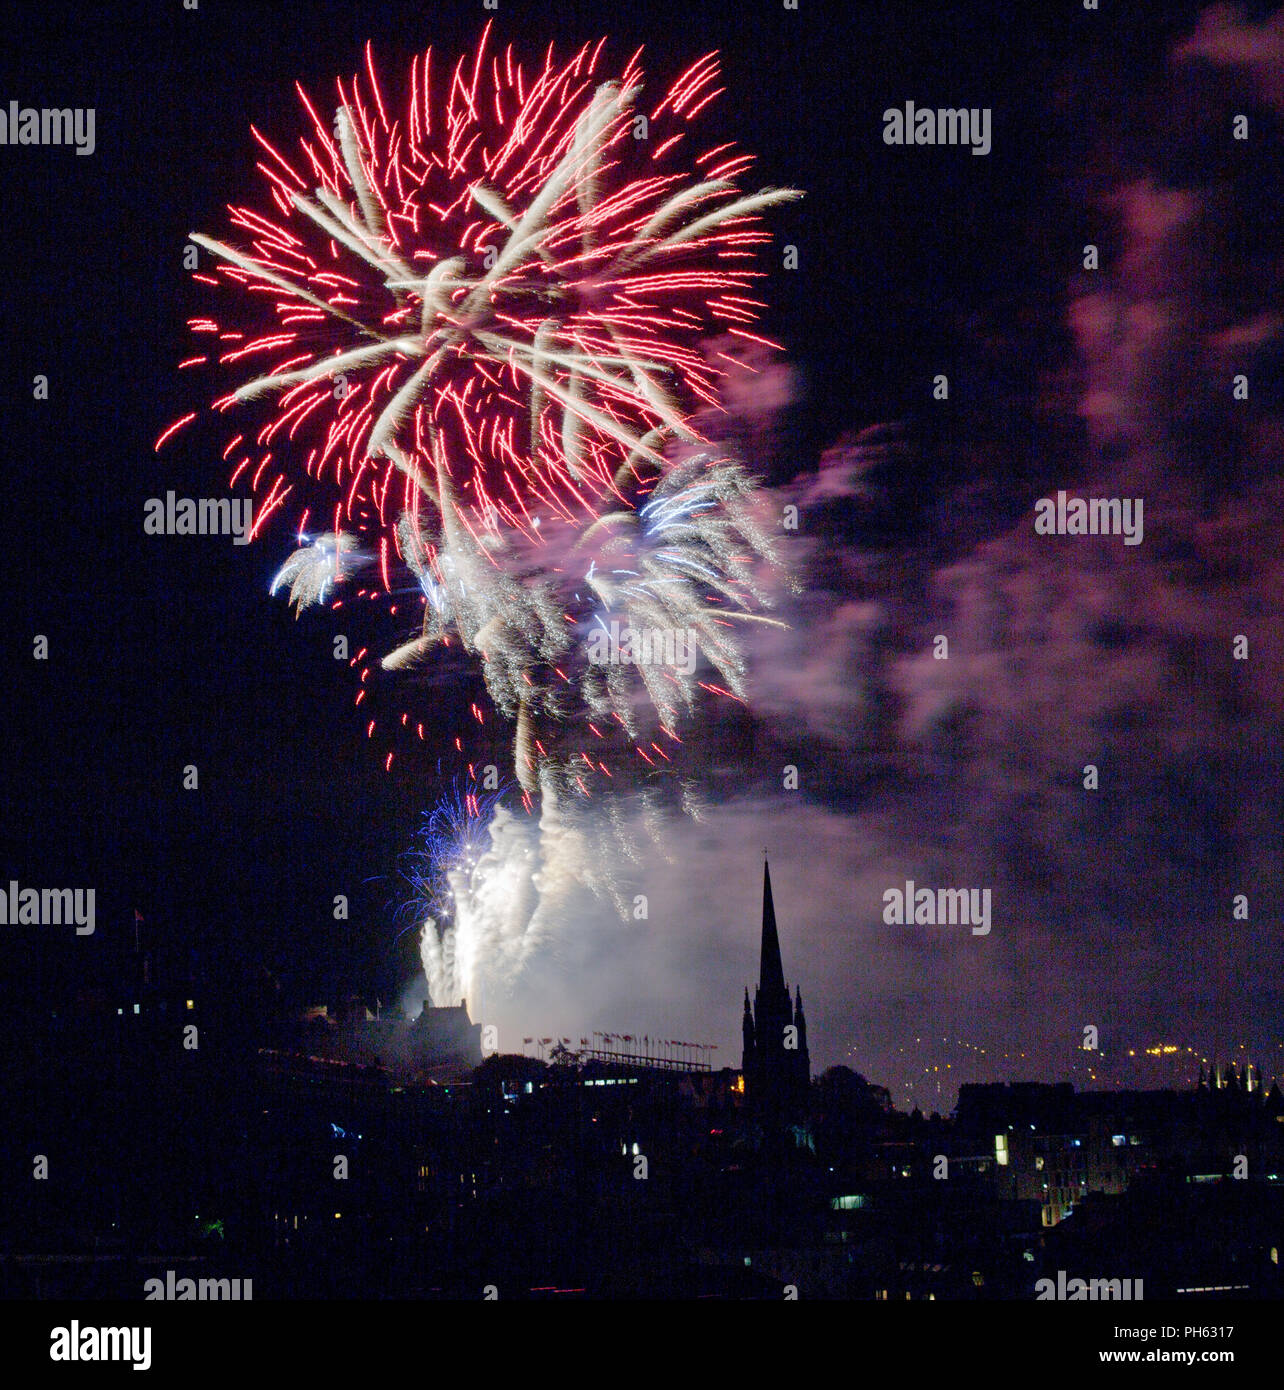 Edinburgh Festival Fireworks at Edinburgh Castle from the Salisbury Crags - Stock Image